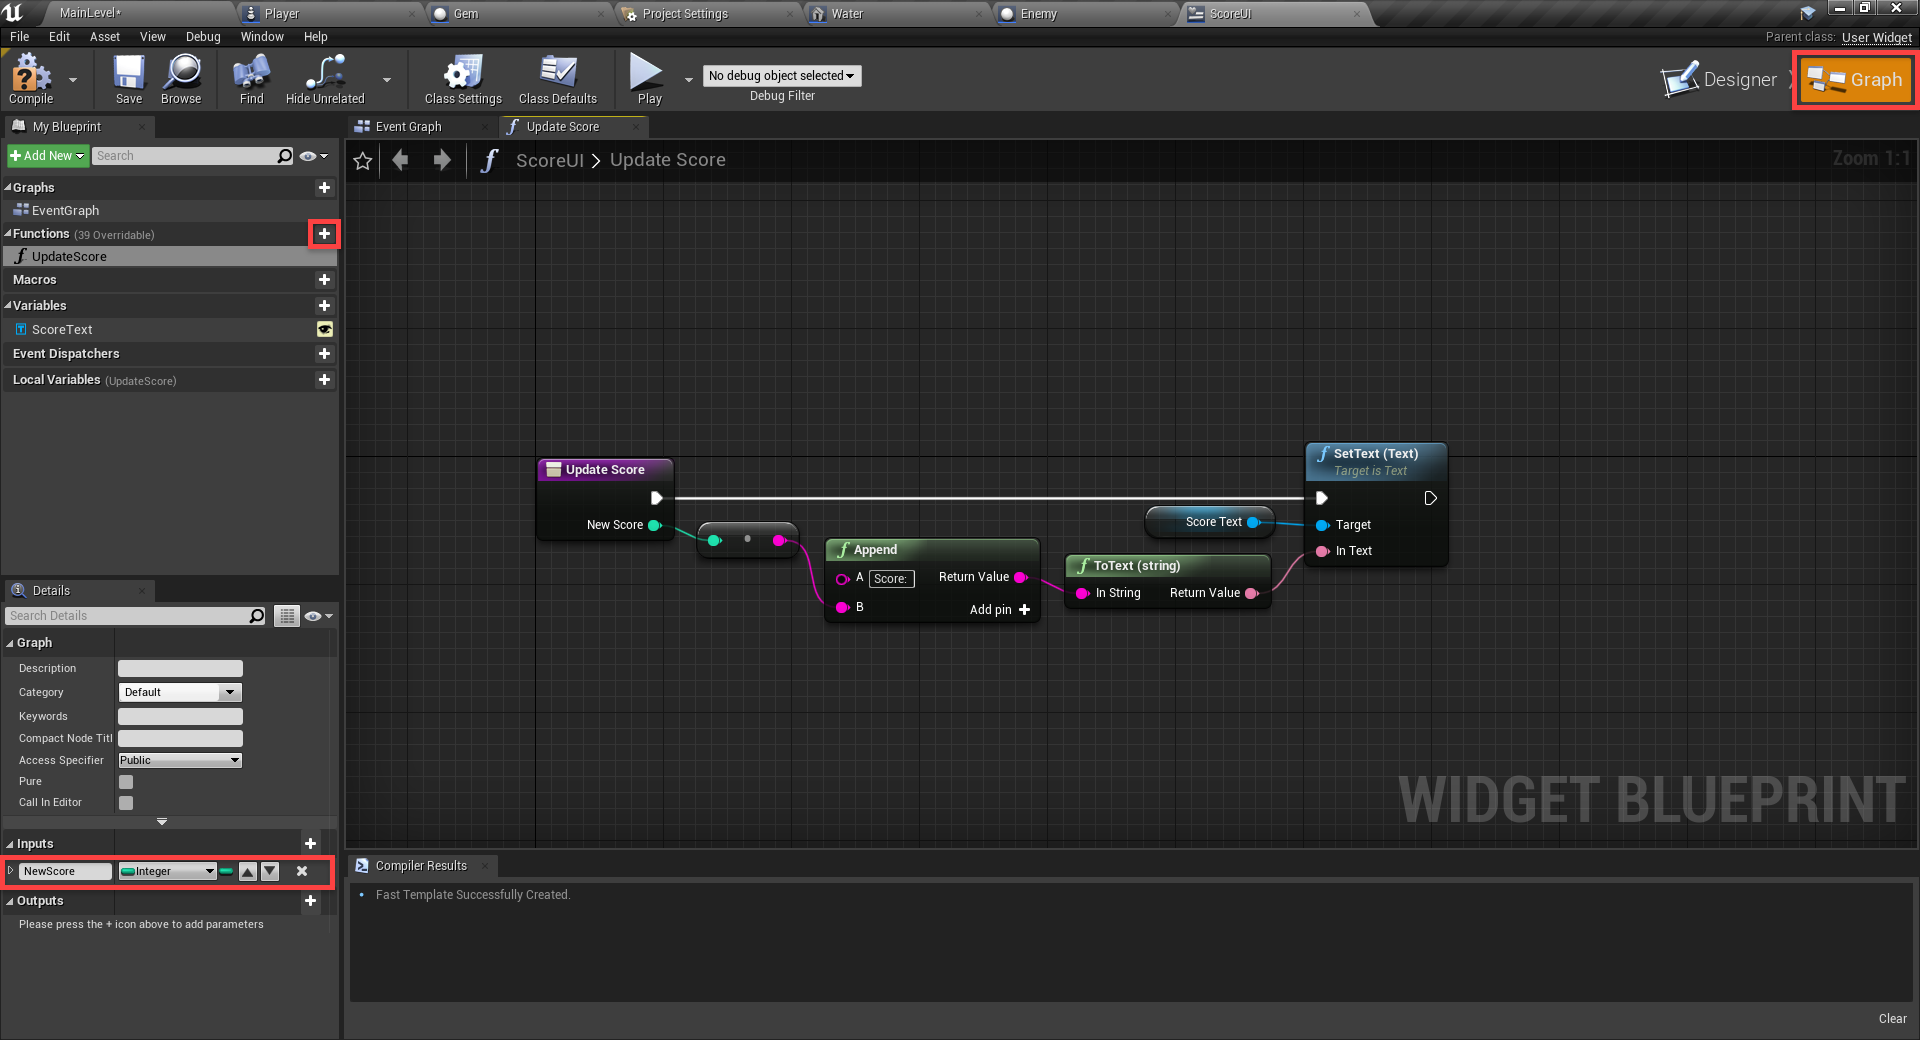 Unreal Engine Event graph with adjustments for UI